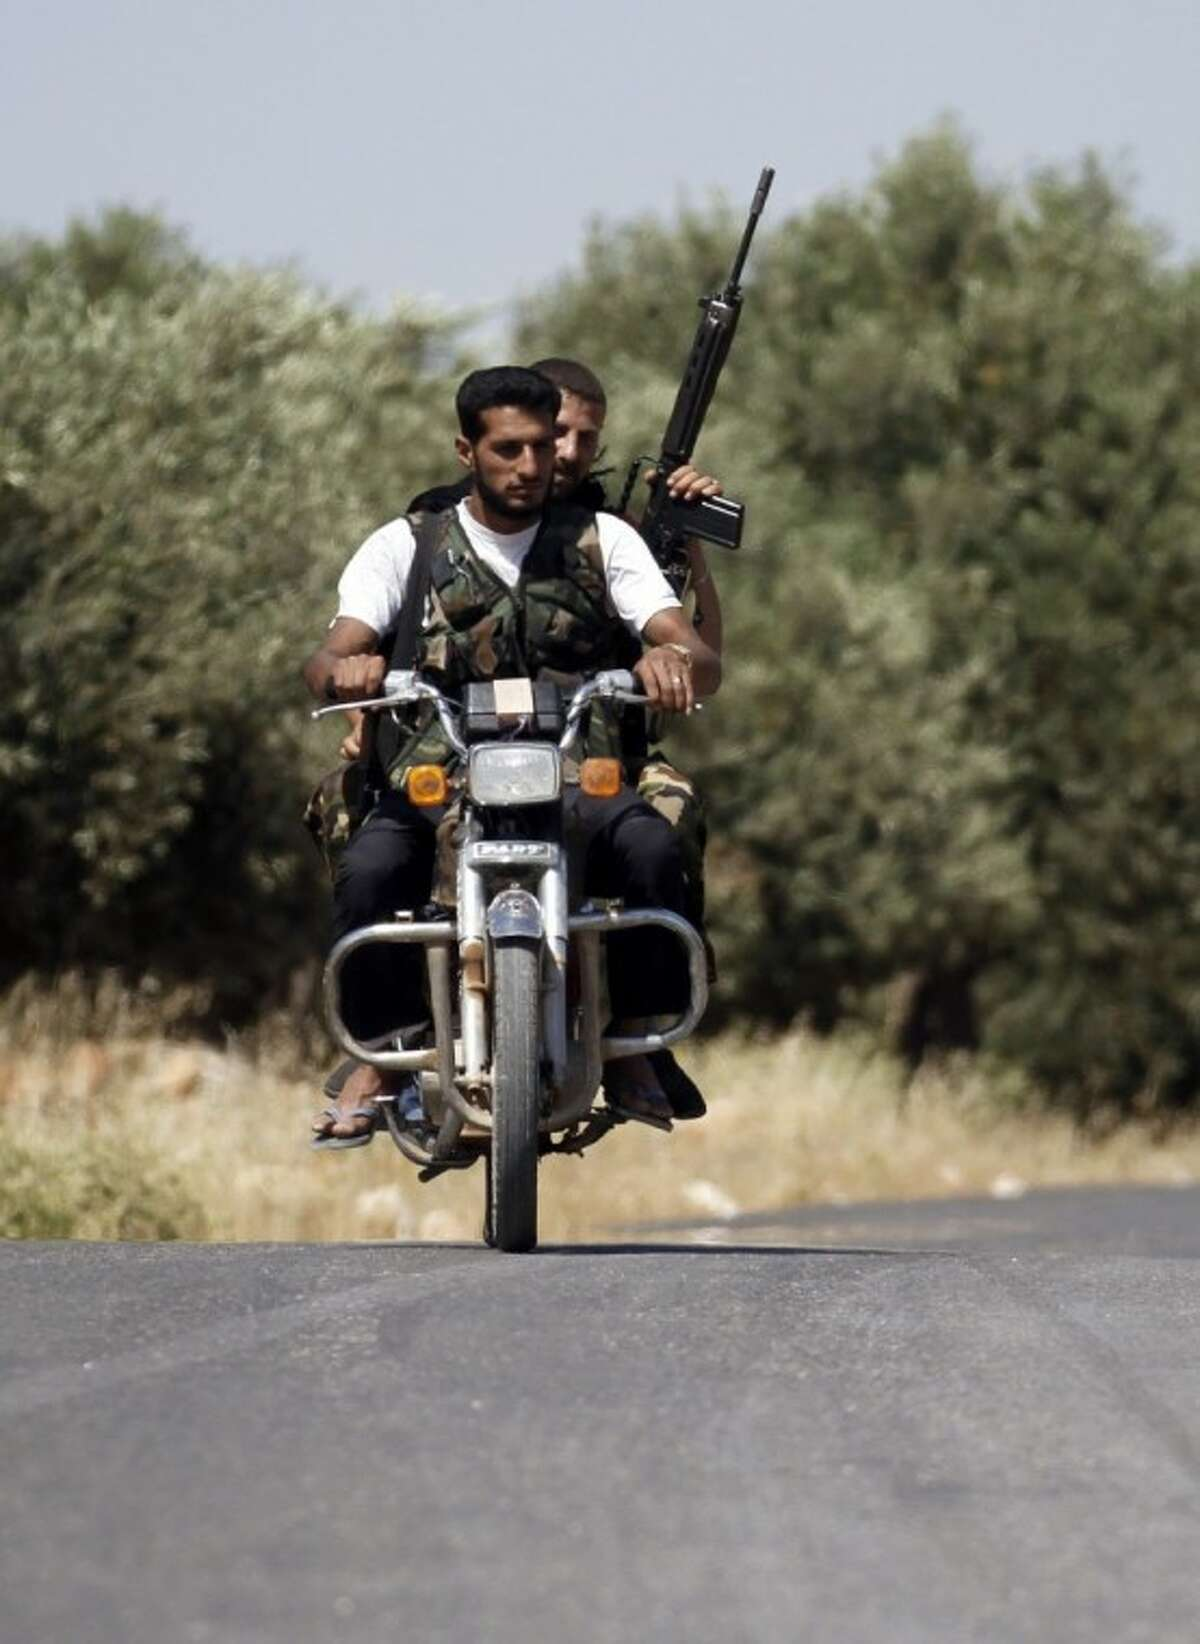 Armed Free Syrian Army soldiers ride a motorcycle on the outskirts of Idlib, Syria, Sunday. Free Syrian Army soldiers are determined to bring down the regime by force of arms, targeting military checkpoints and other government sites. A U.N. observer team with nearly 300 members has done little to quell the bloodshed.